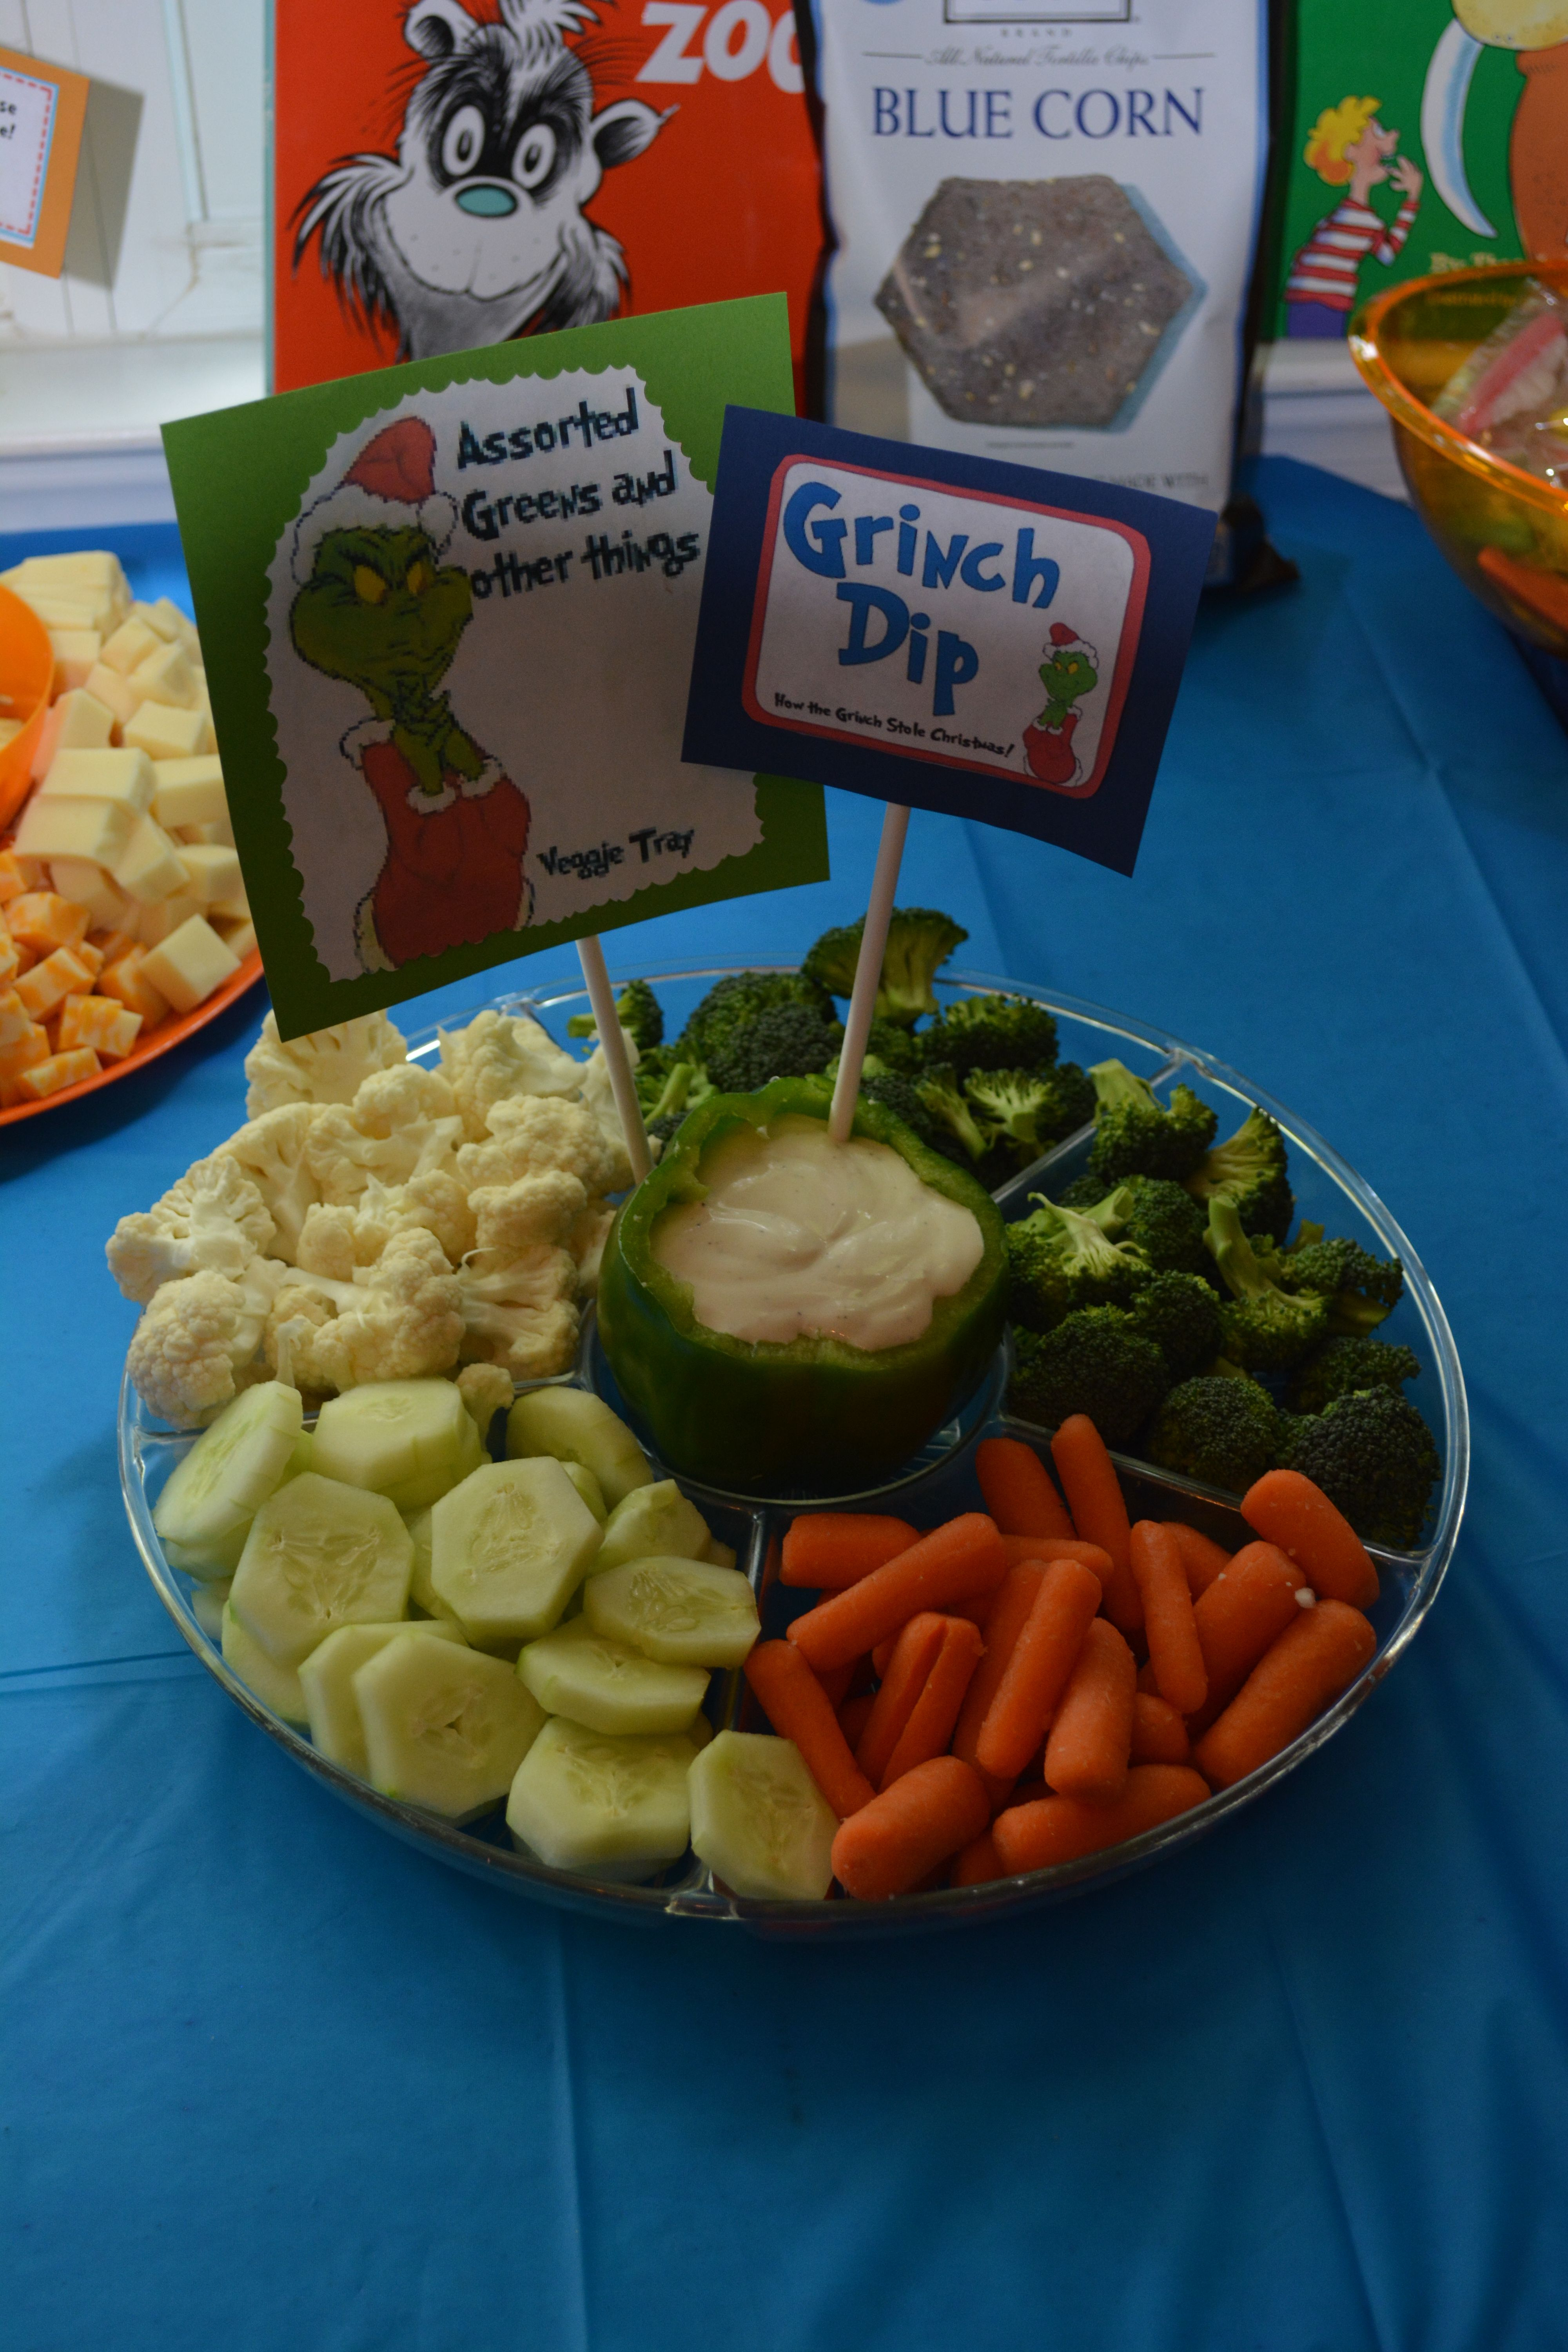 Assorted Greens And Other Things And Grinch Dip For Veggie